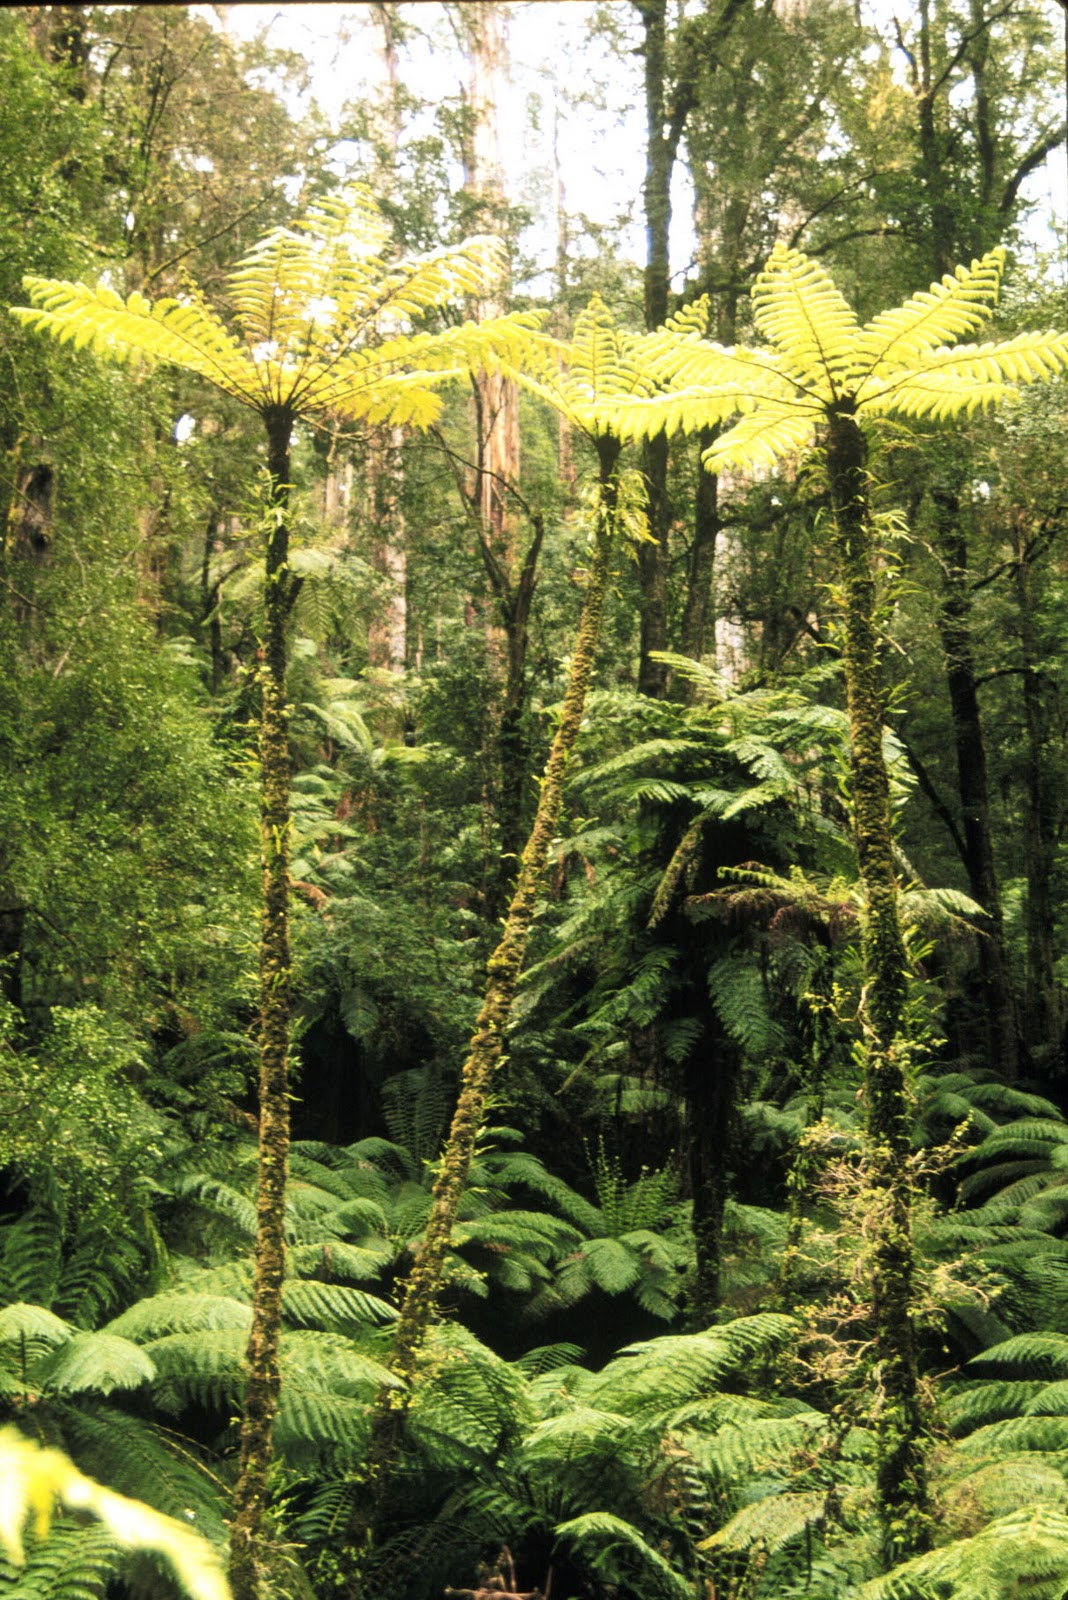 hight resolution of tree ferns are vascular plants and their spore producing generation is the main plant that can get quite tall